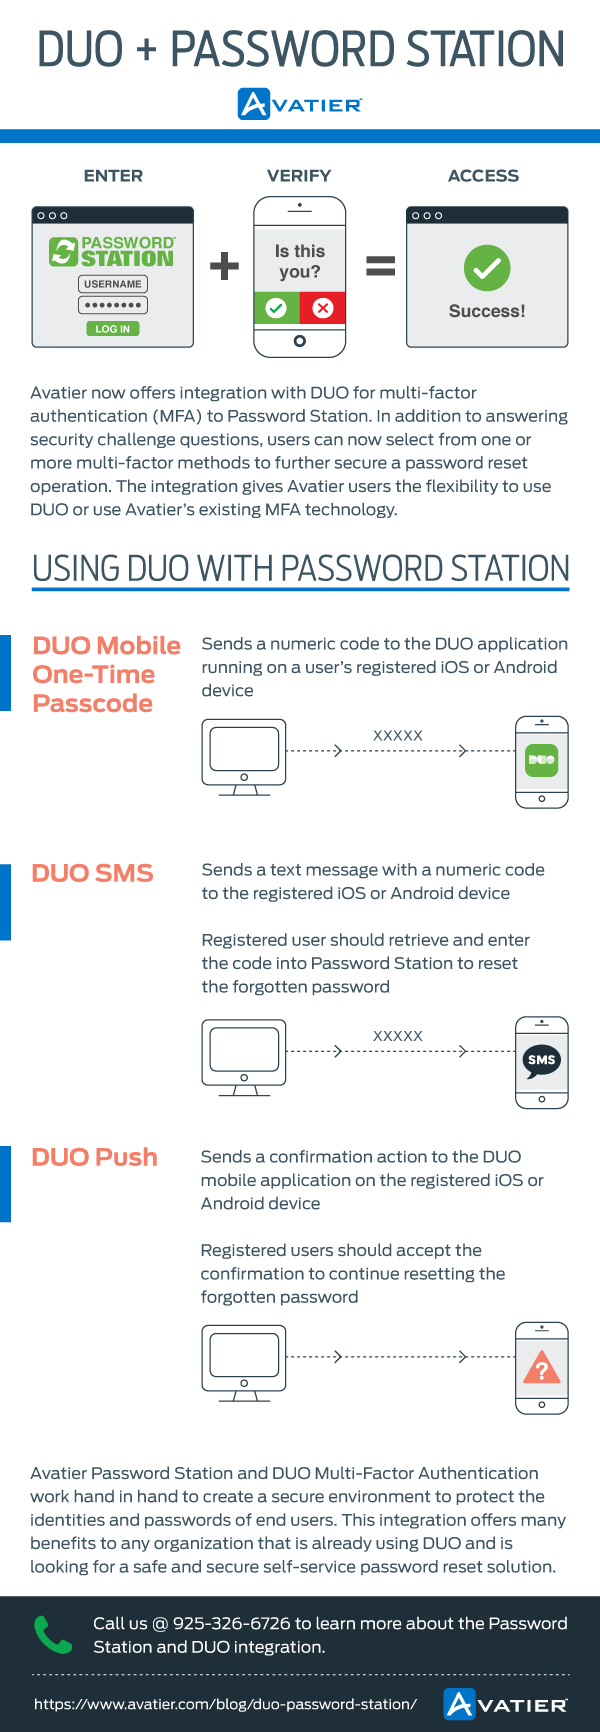 DUO Avatier Password Station